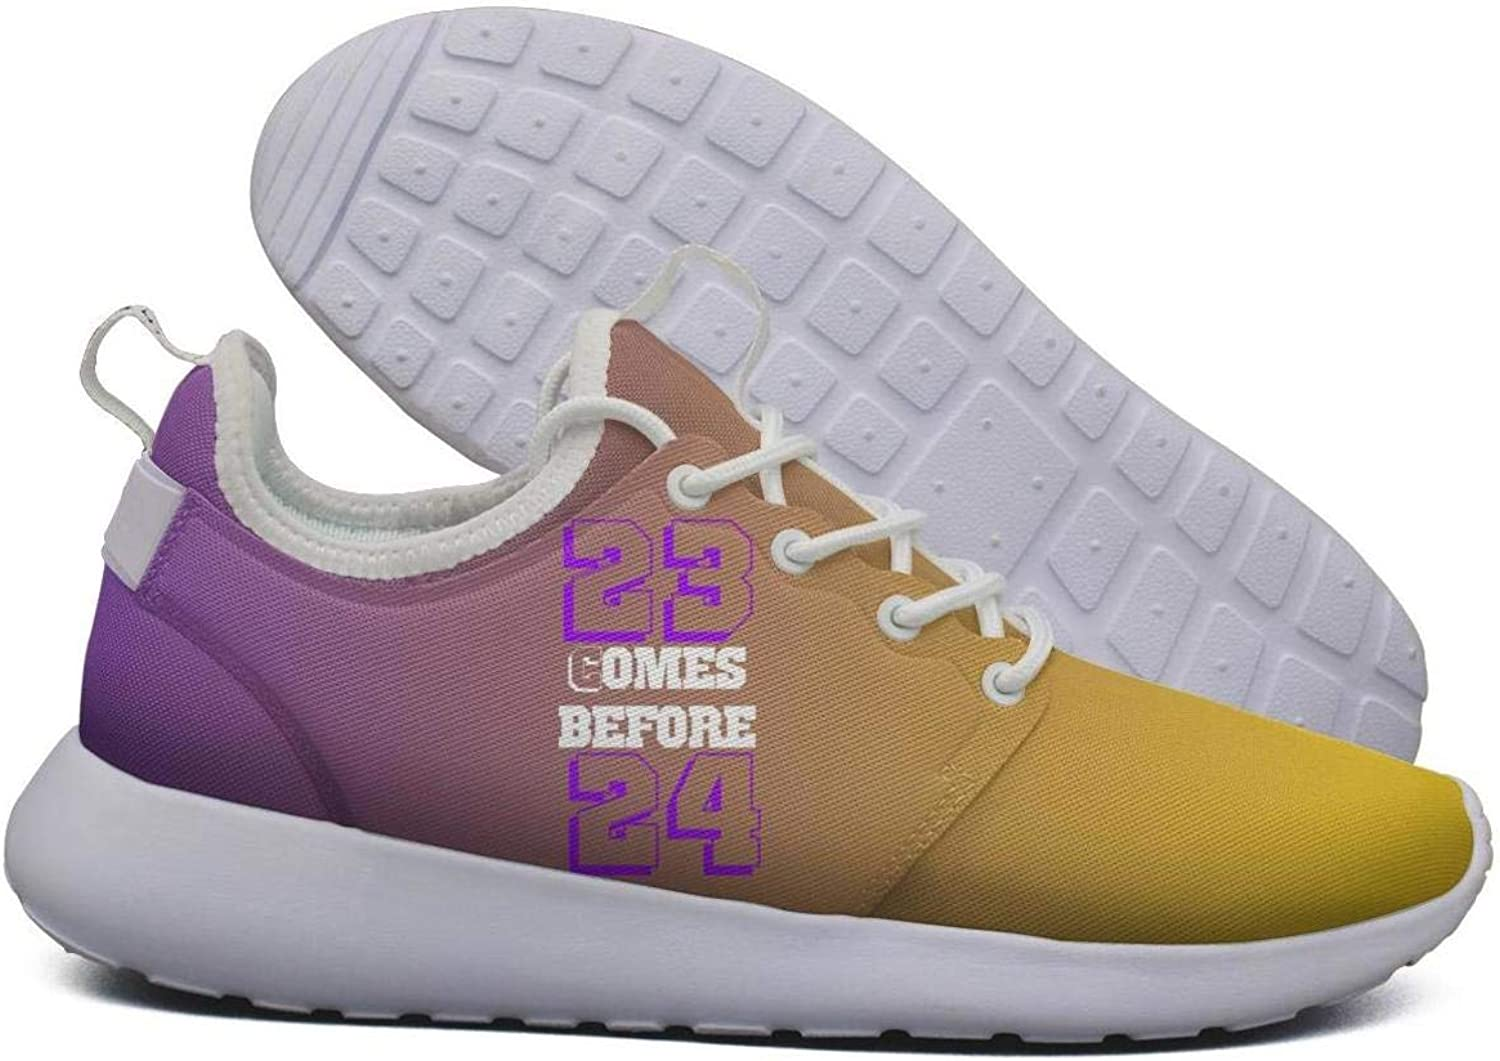 Womens Roshe Two Lightweight Purple 23 Comes beforce 24_labron Breathable Cross-Trainer mesh shoes